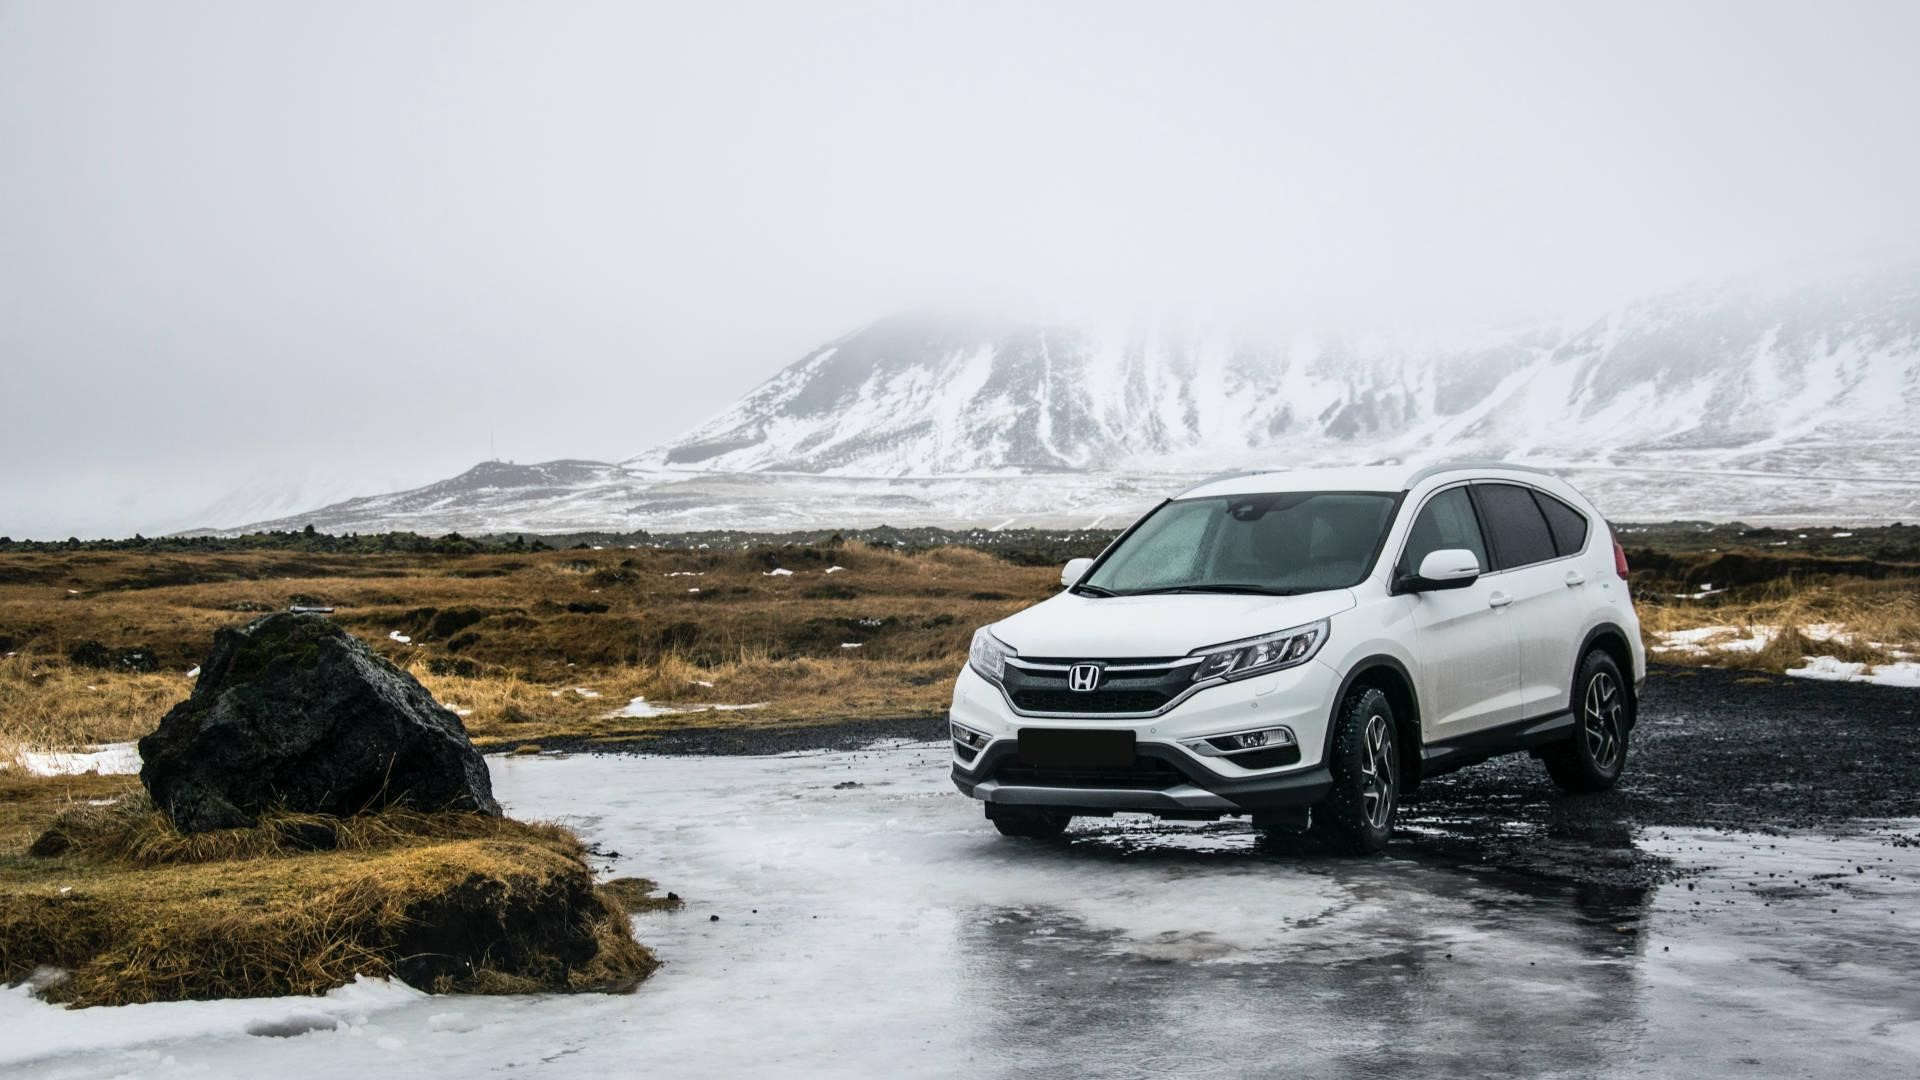 A Honda used car, parked in front of snow-capped mountain backdrop